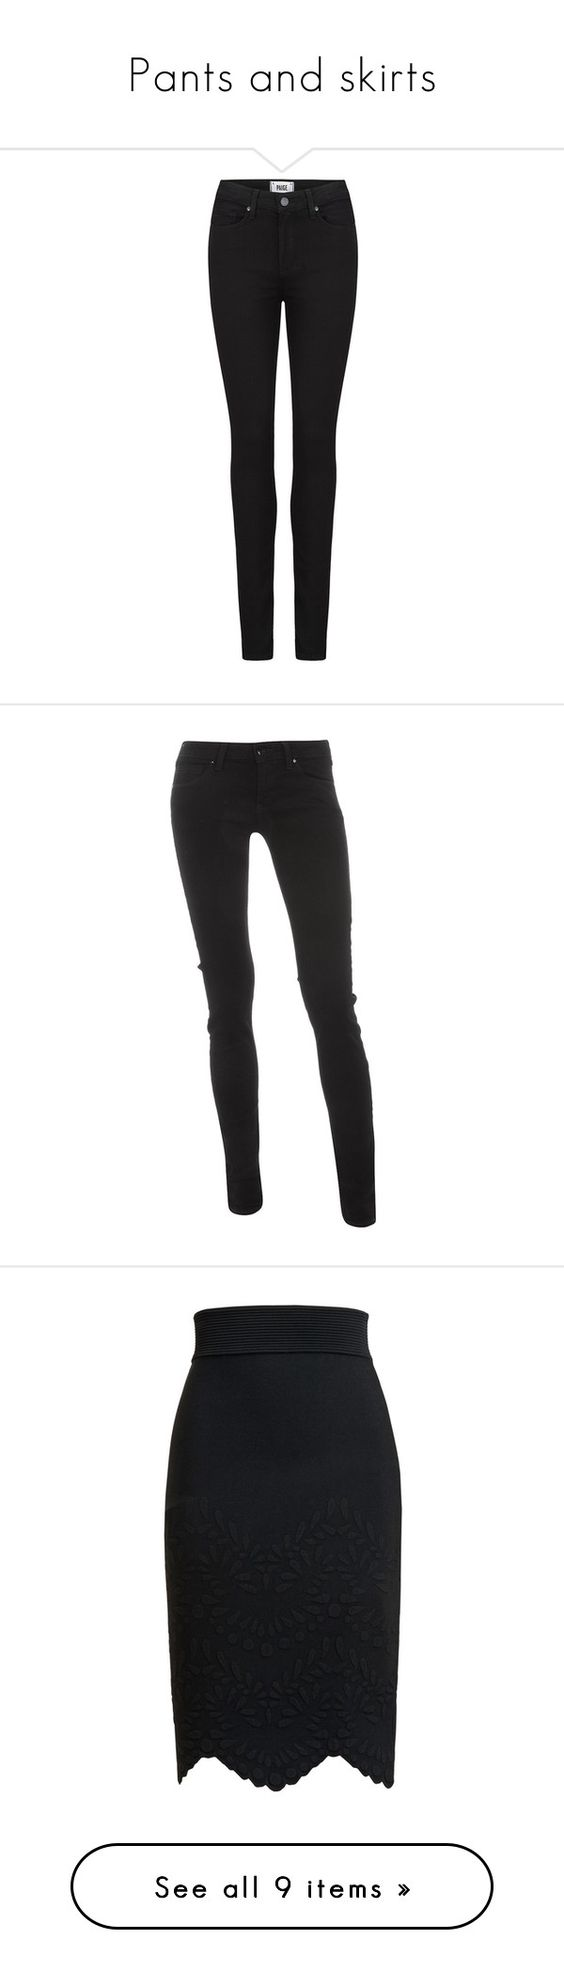 """Pants and skirts"" by princess-serena-of-sweden ❤ liked on Polyvore featuring jeans, pants, bottoms, trousers, calças, black shadow, high-waisted jeans, slim jeans, denim skinny jeans and paige denim skinny jeans"